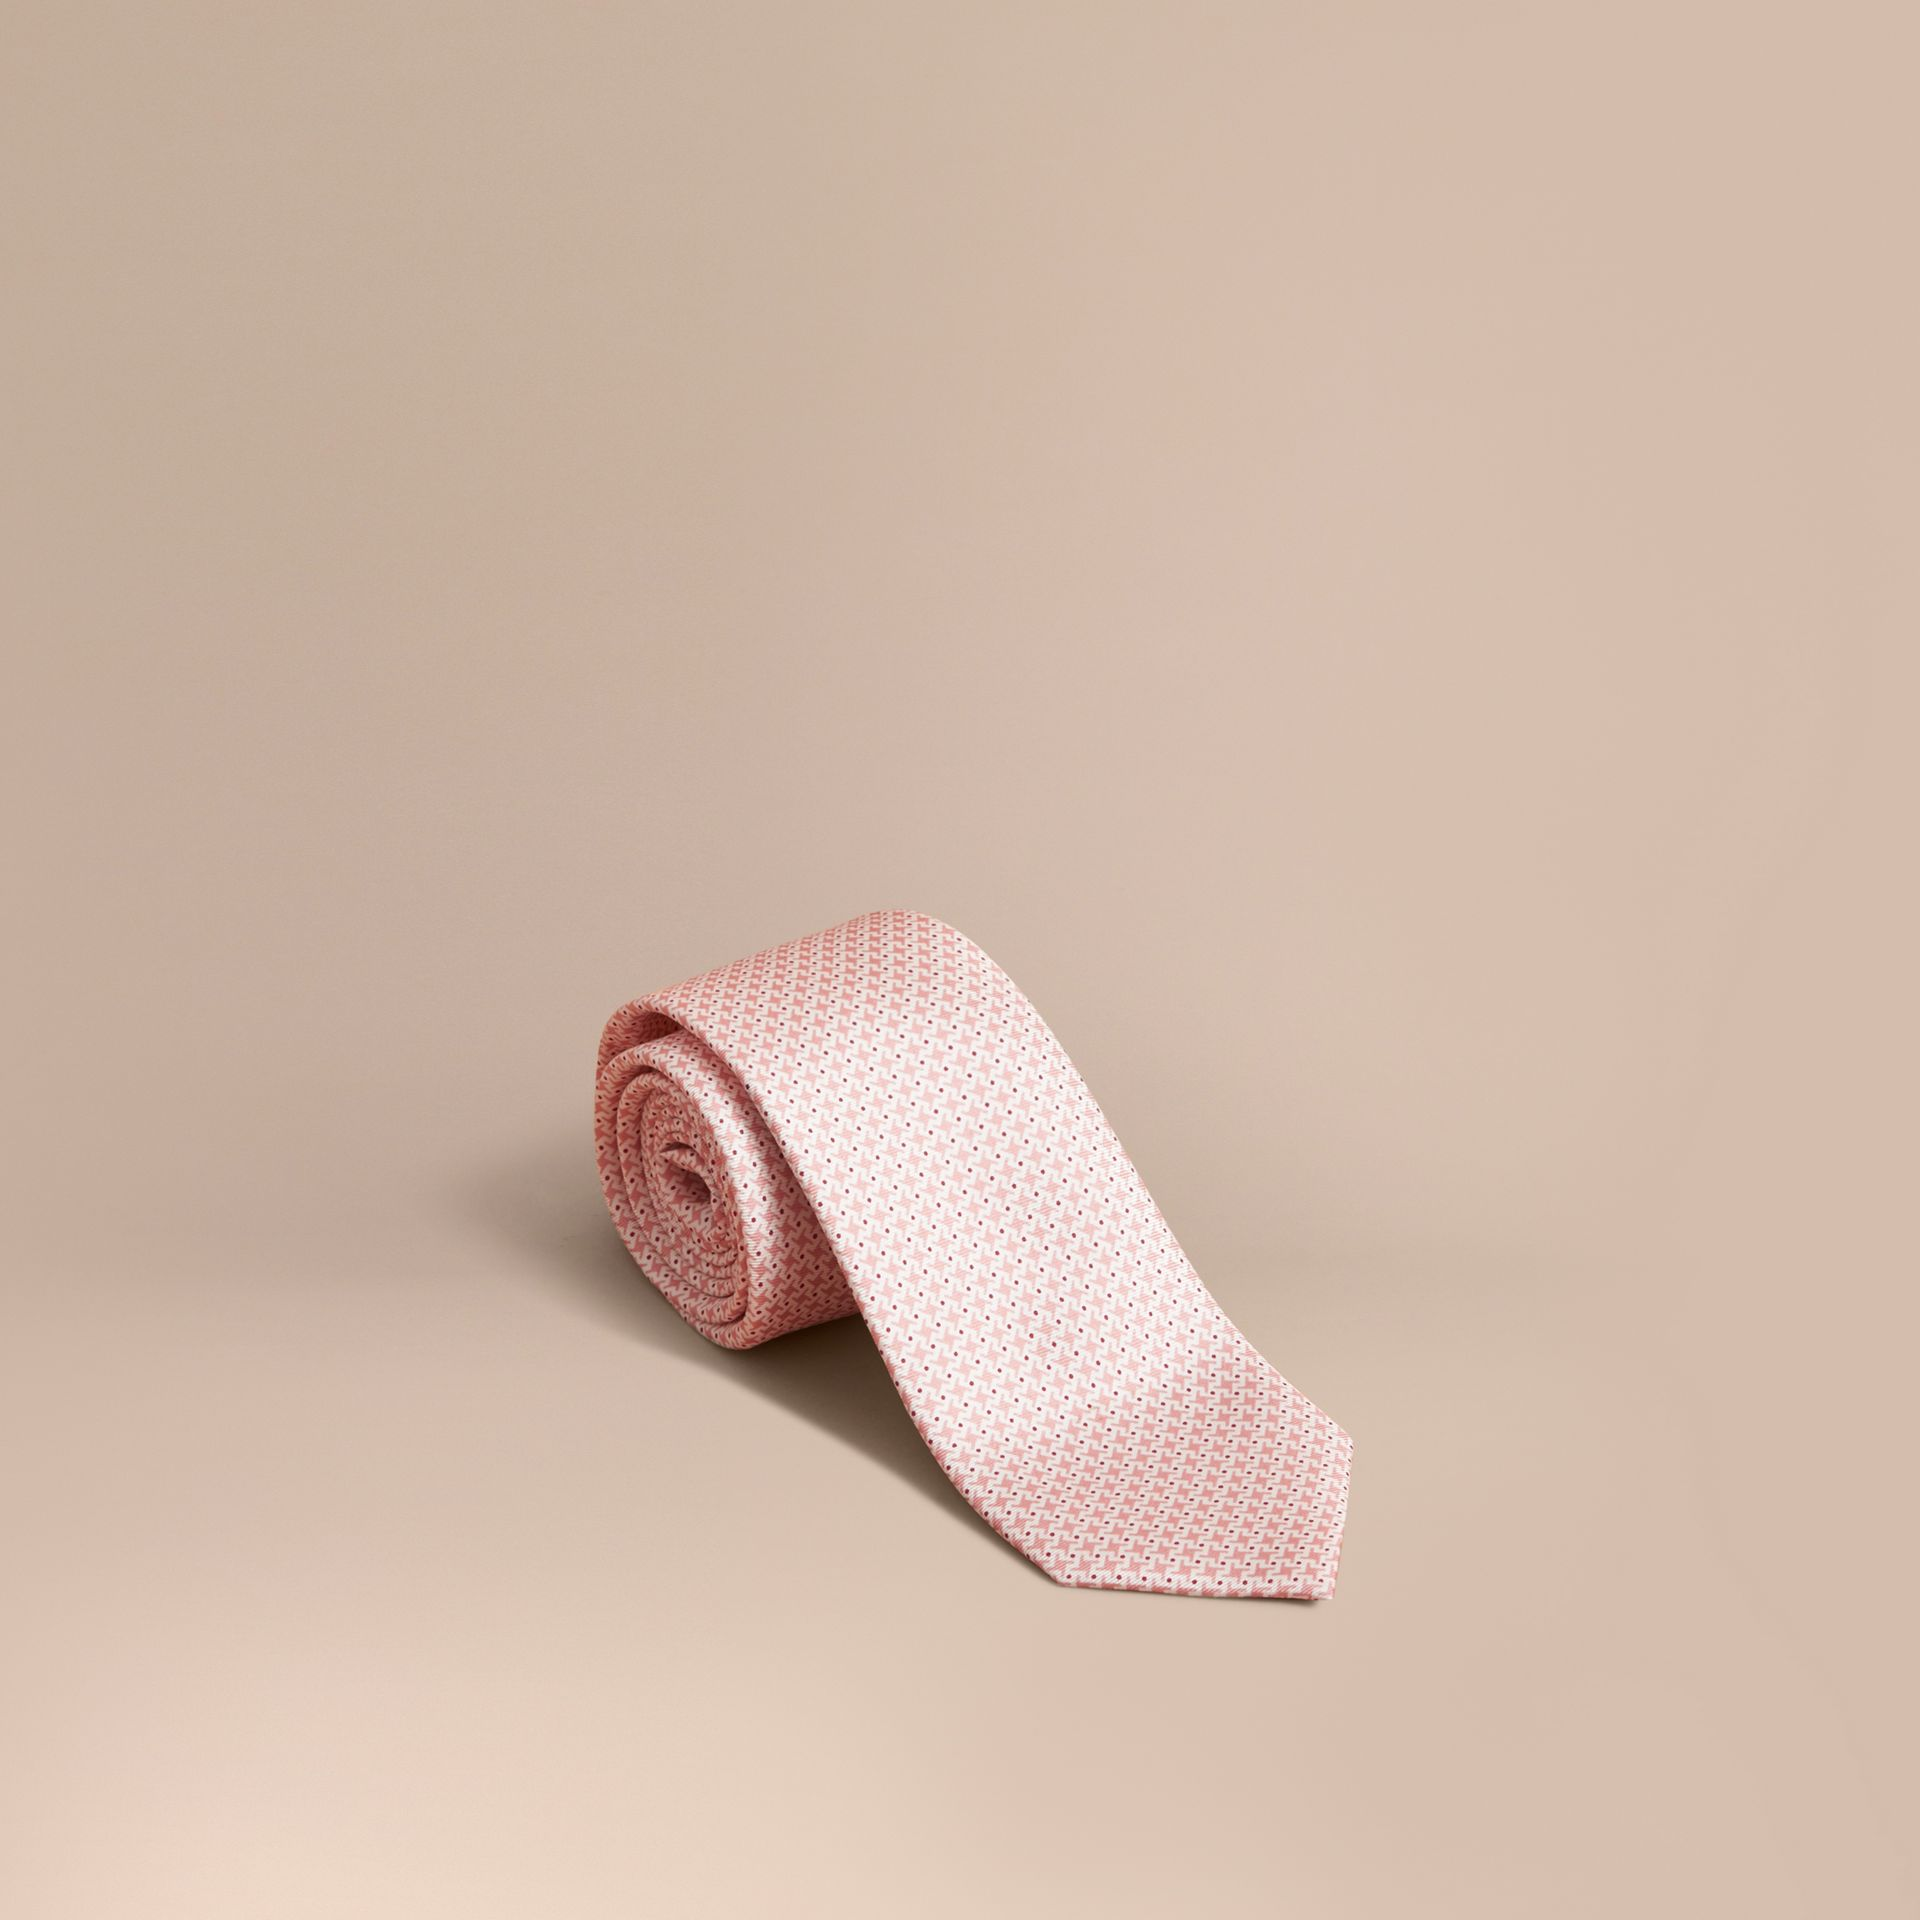 Modern Cut Graphic Puppy Tooth Print Silk Tie in Rose Pink - Men | Burberry Australia - gallery image 1